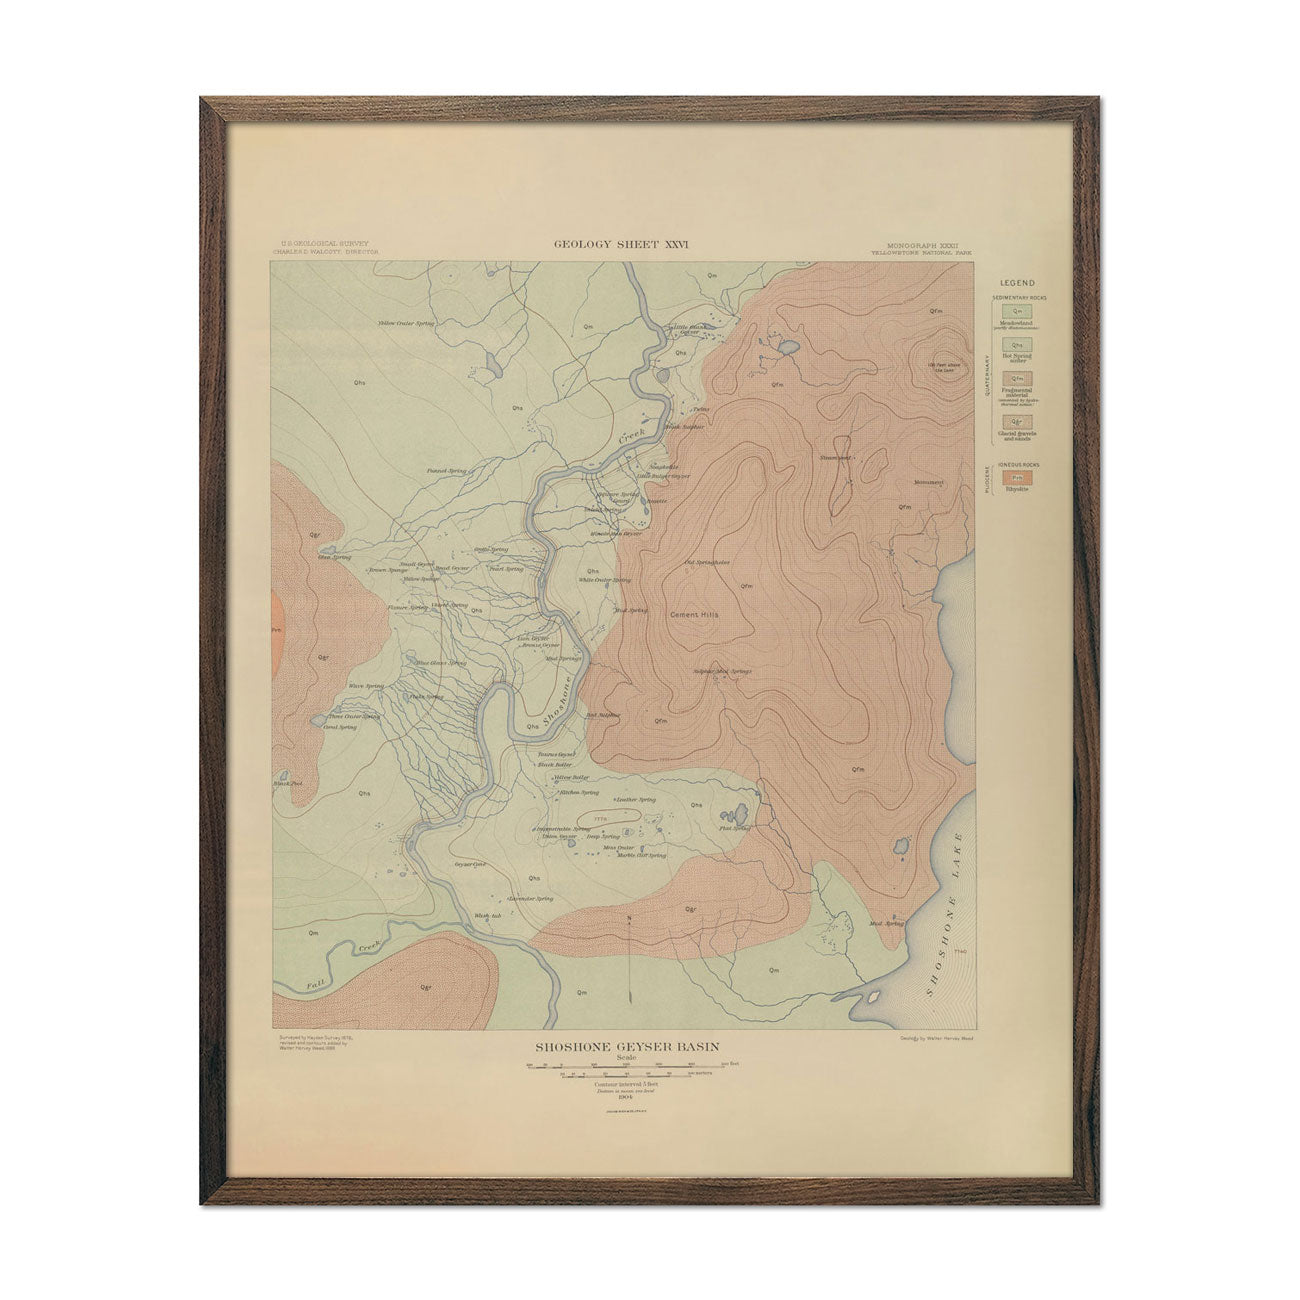 1904 Yellowstone Geologic Map of Shoshone Geyser Basin